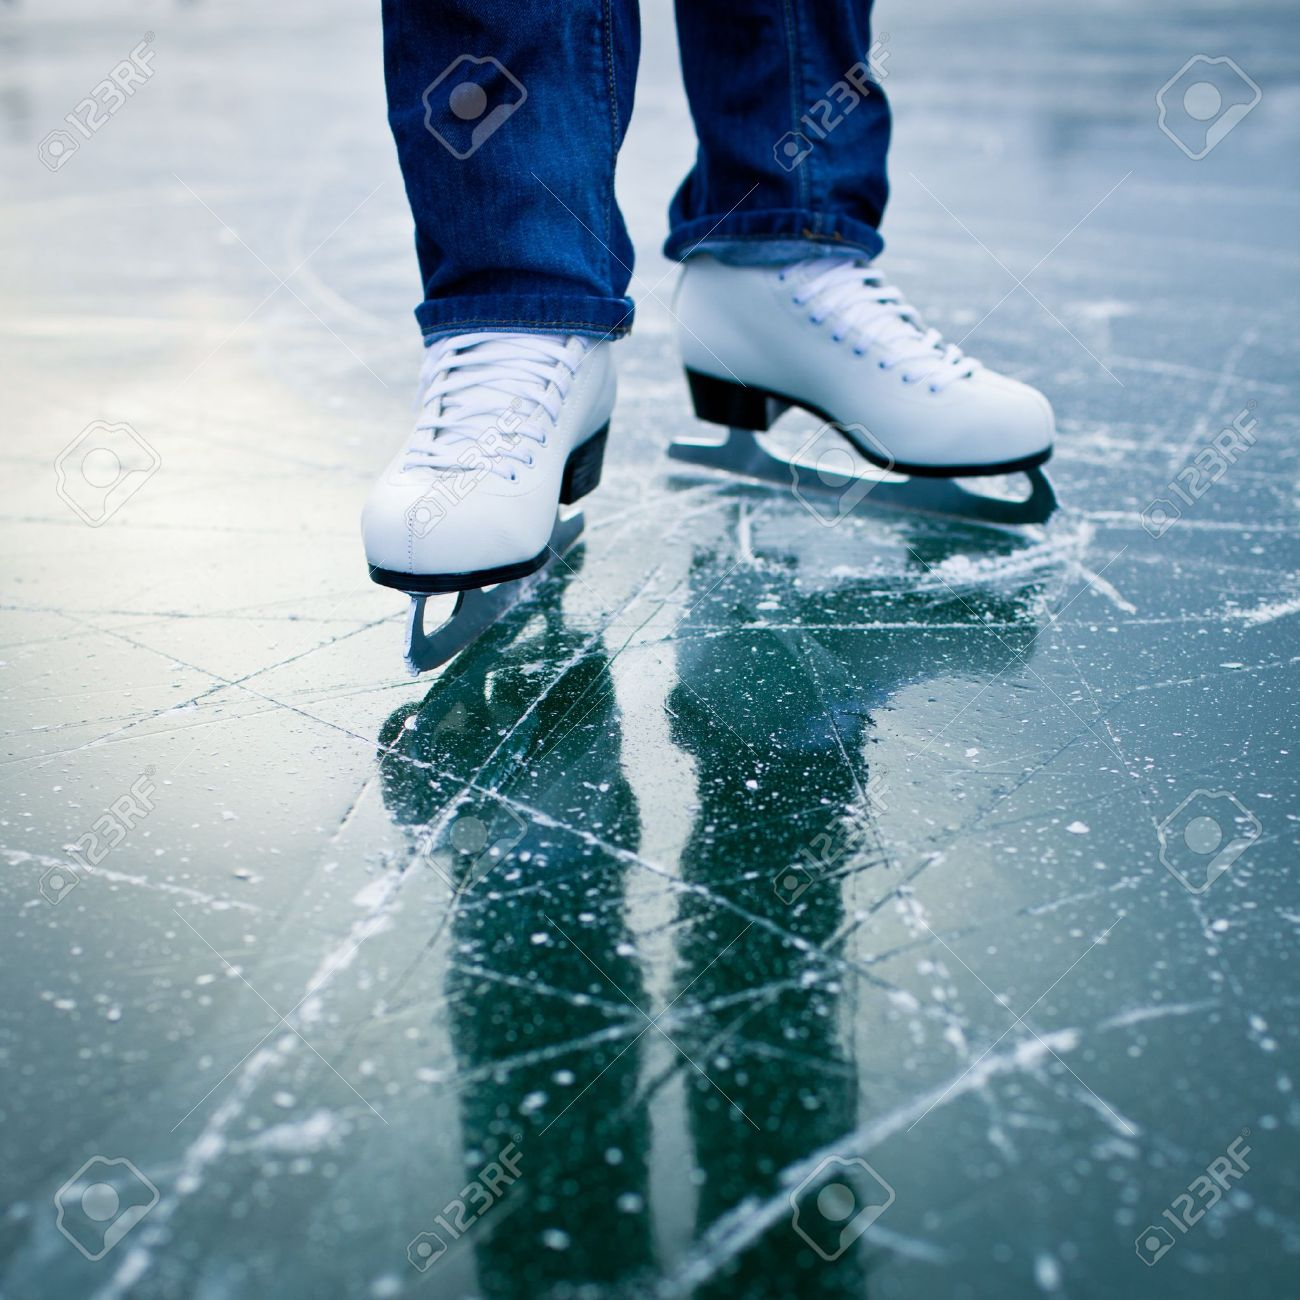 Young woman ice skating outdoors on a pond on a freezing winter day - detail of the legs Stock Photo - 12808633